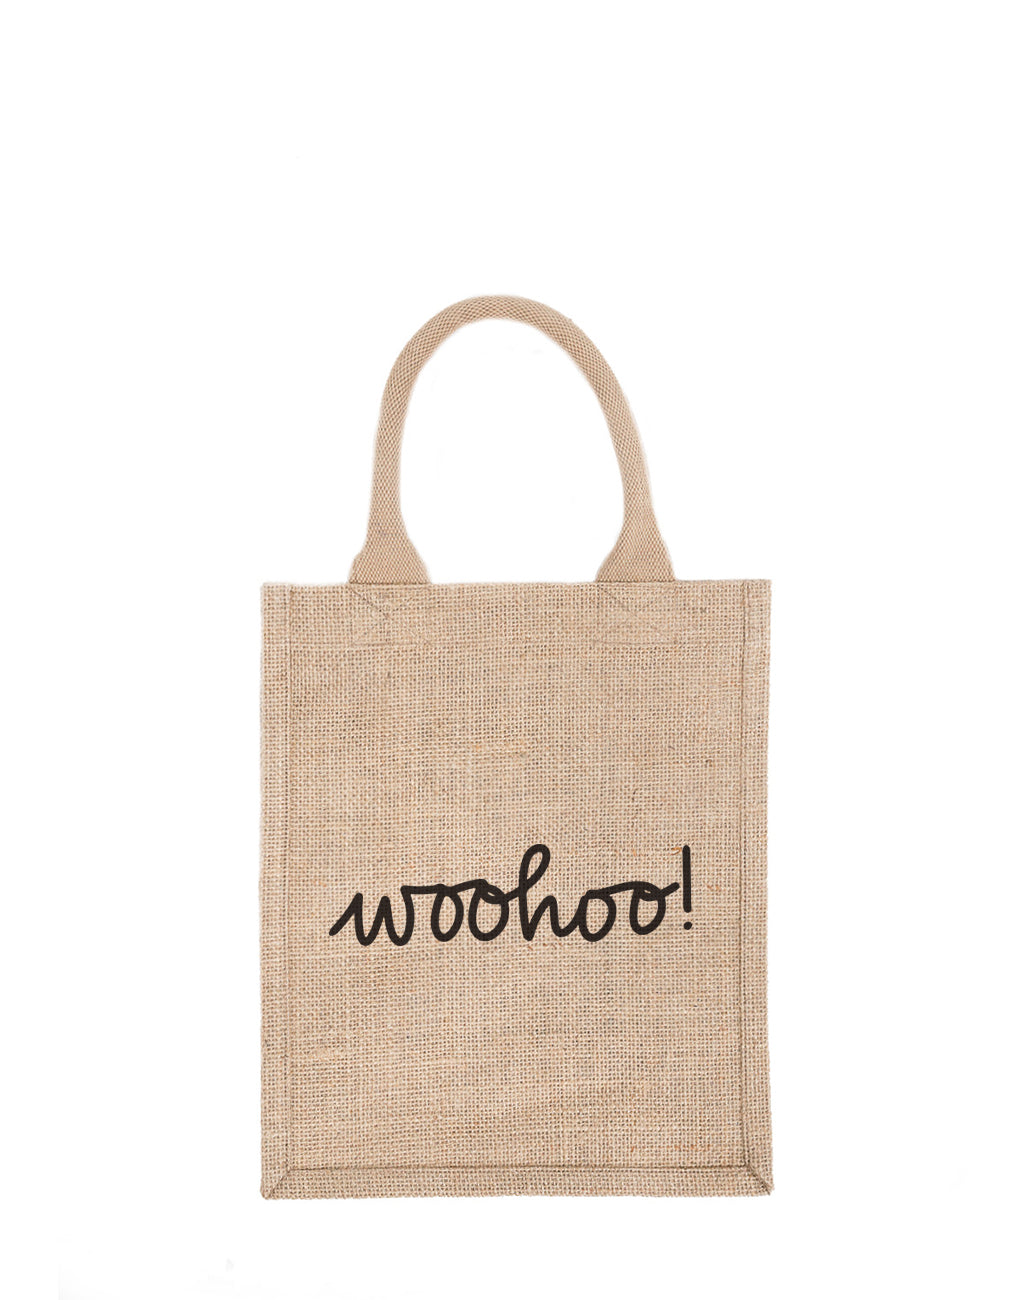 Medium Woohoo! Reusable Gift Tote In Black Font | The Little Market